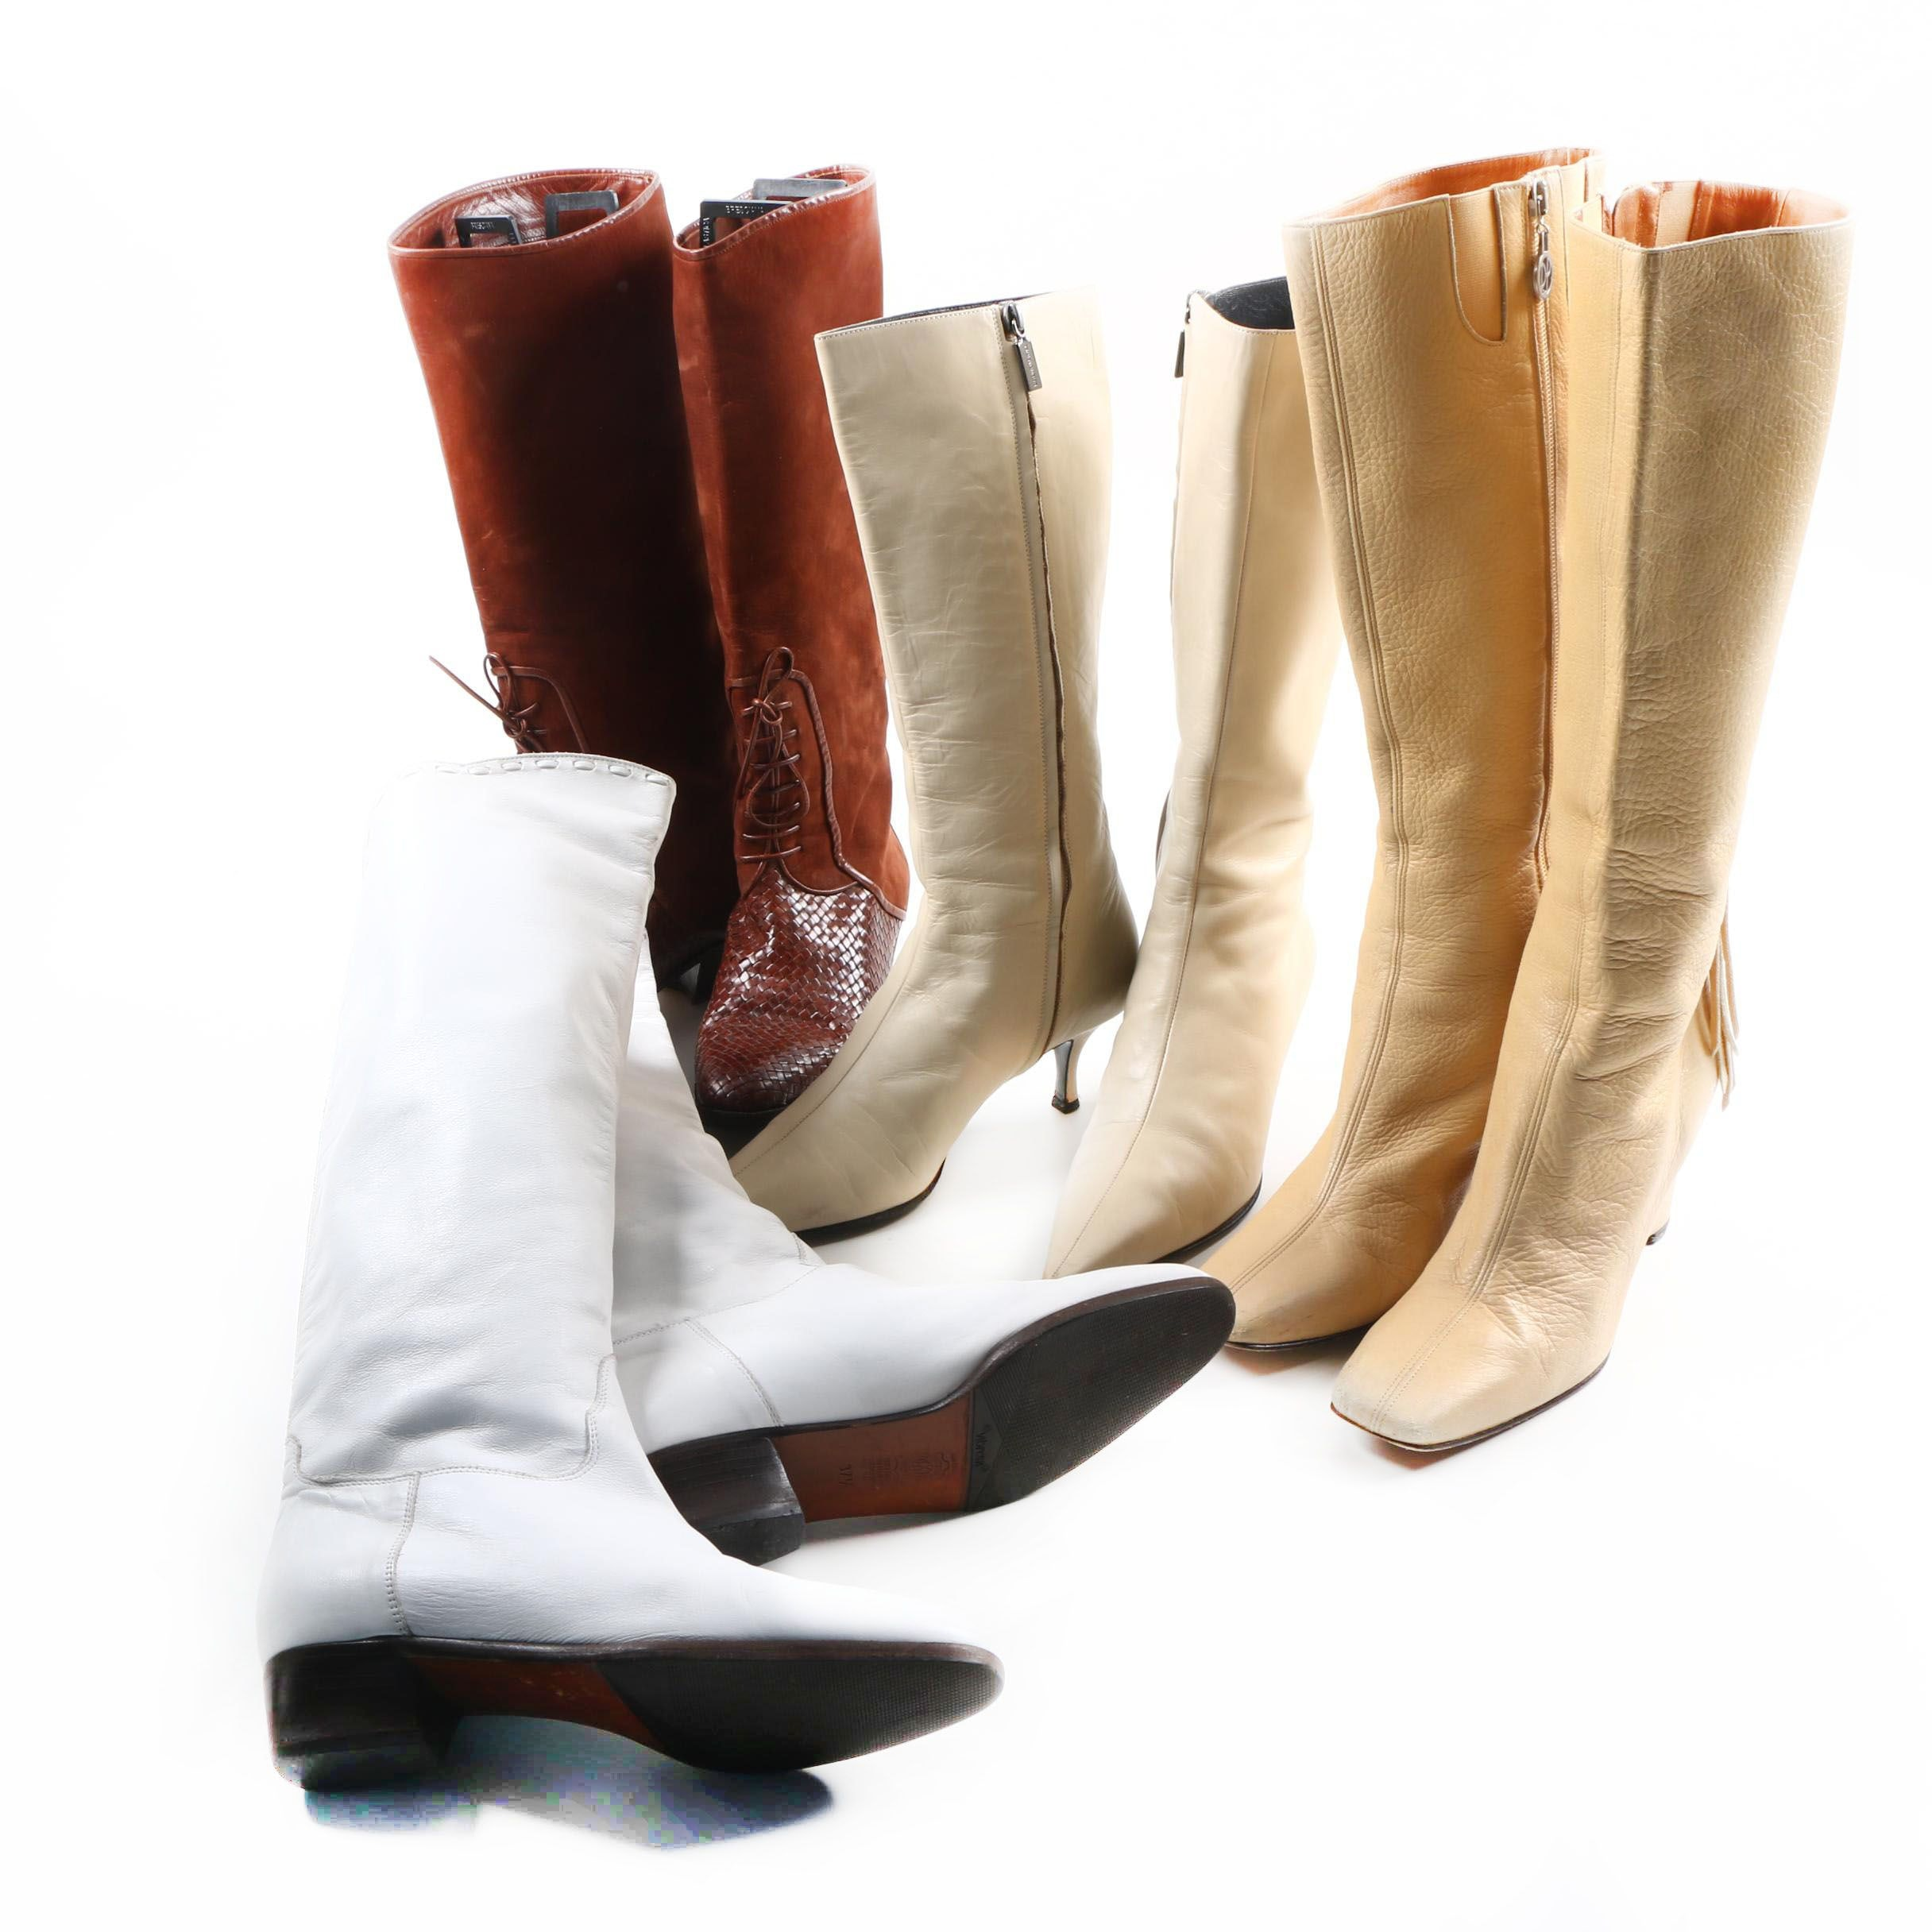 Women's Boots Including Via Spiga